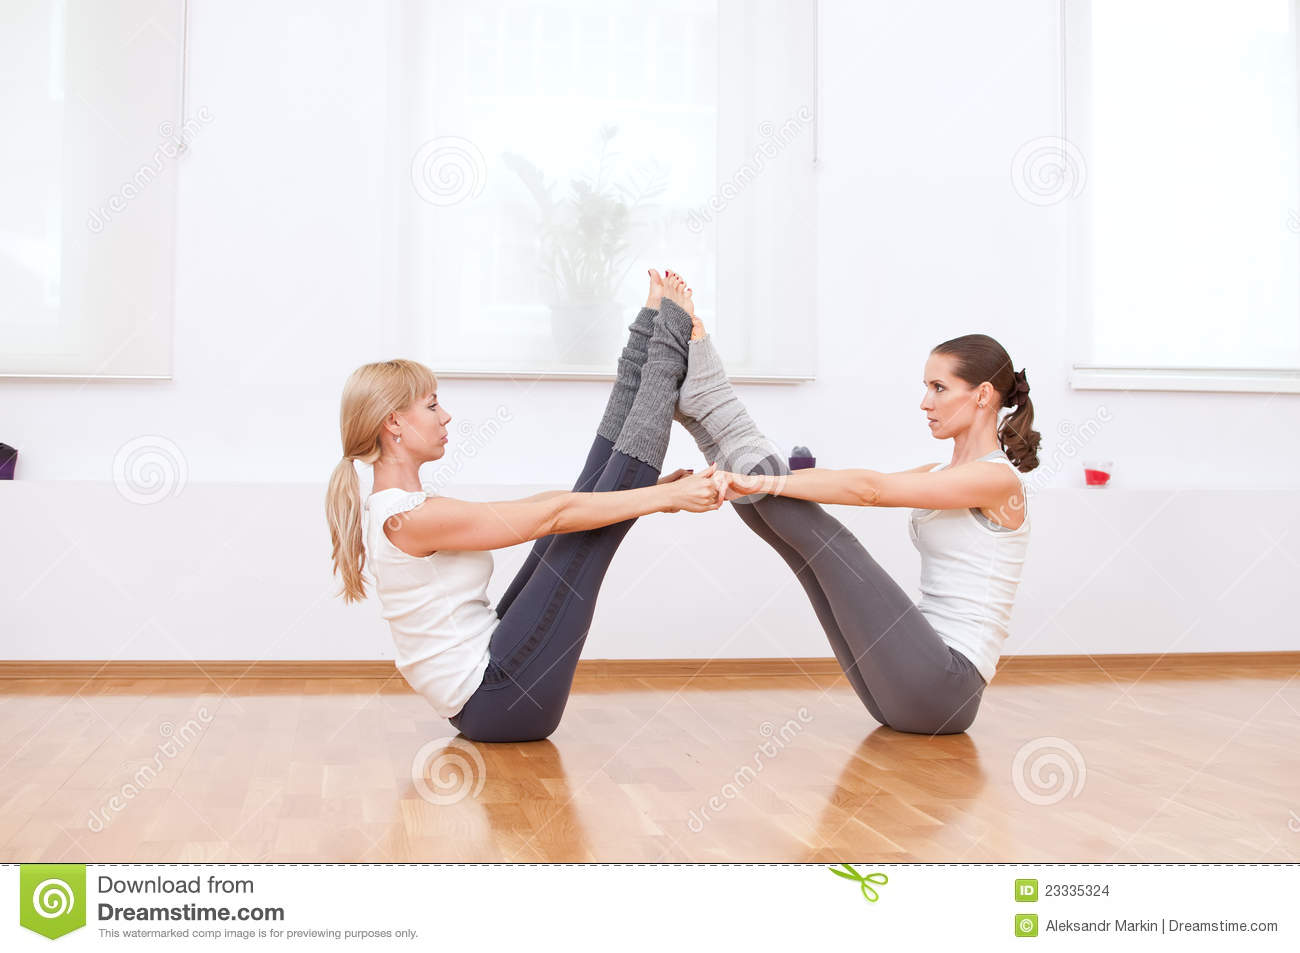 Women Doing Yoga Exercise At Gym Stock Images - Image: 23335324